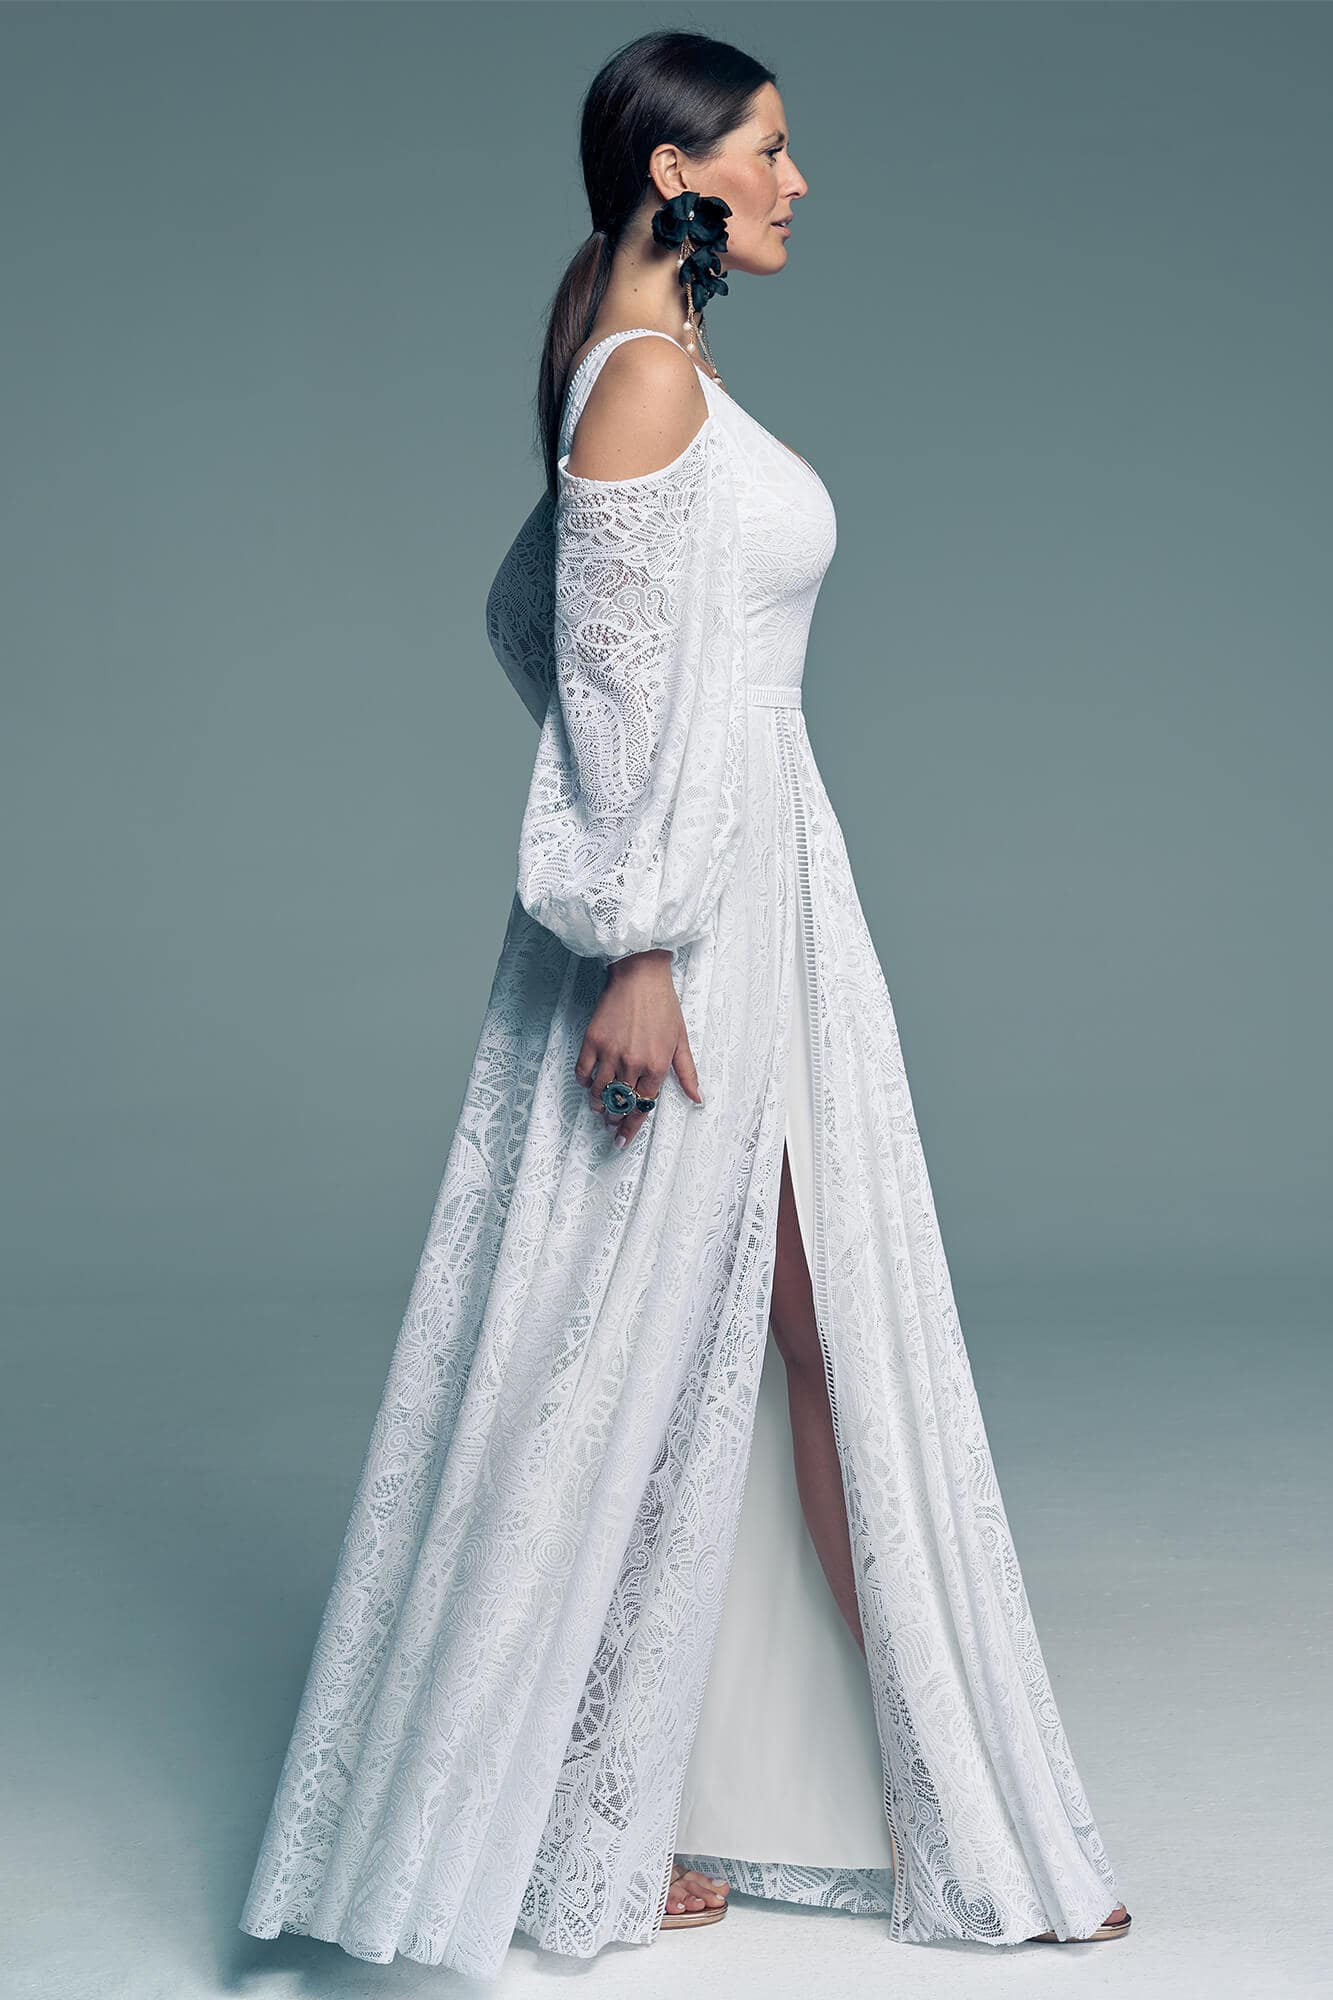 Wedding dress which is simple and elegant at the same time Santorini 14